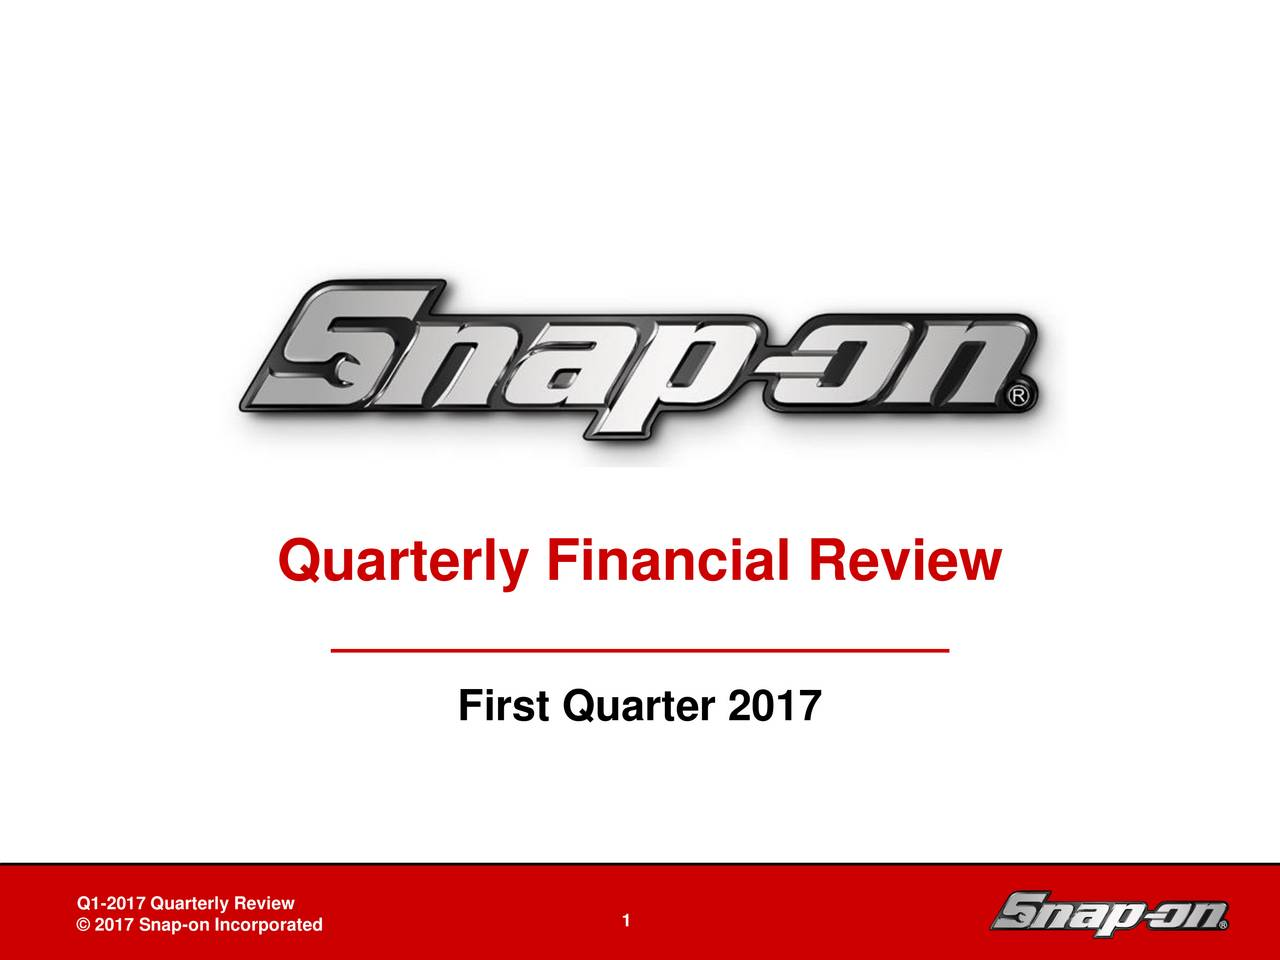 First Quarter 2017 Snap-on Tools In-Depth Business Review Board of Directorsy Review DB-2 - 1 1April 27, 2011on Incorporated 1